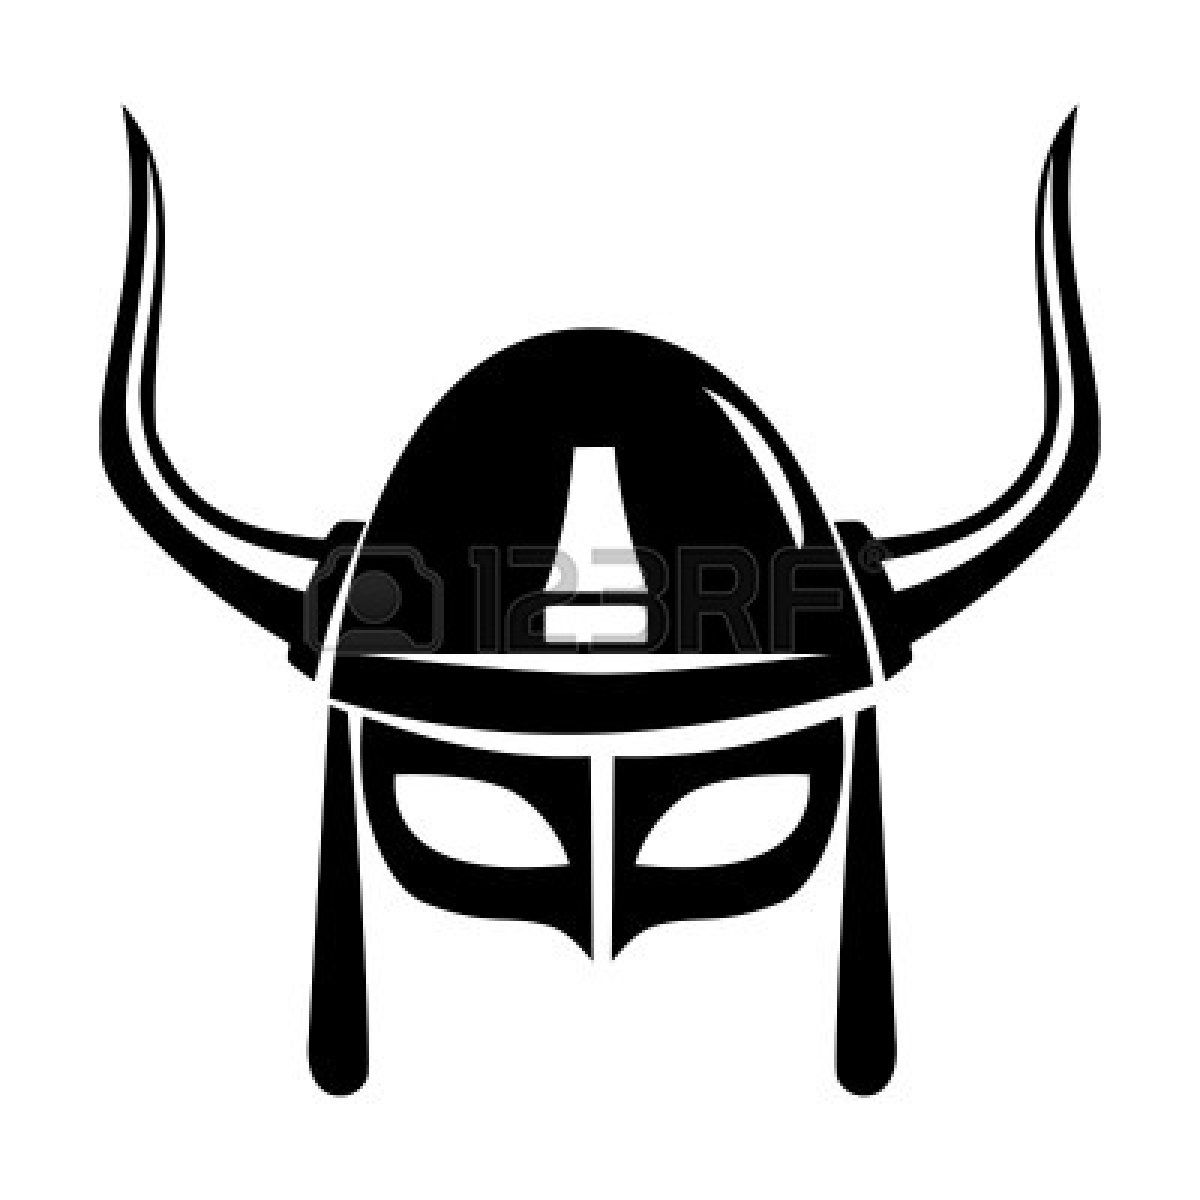 Anglo saxon helmet clipart clipart images gallery for free.